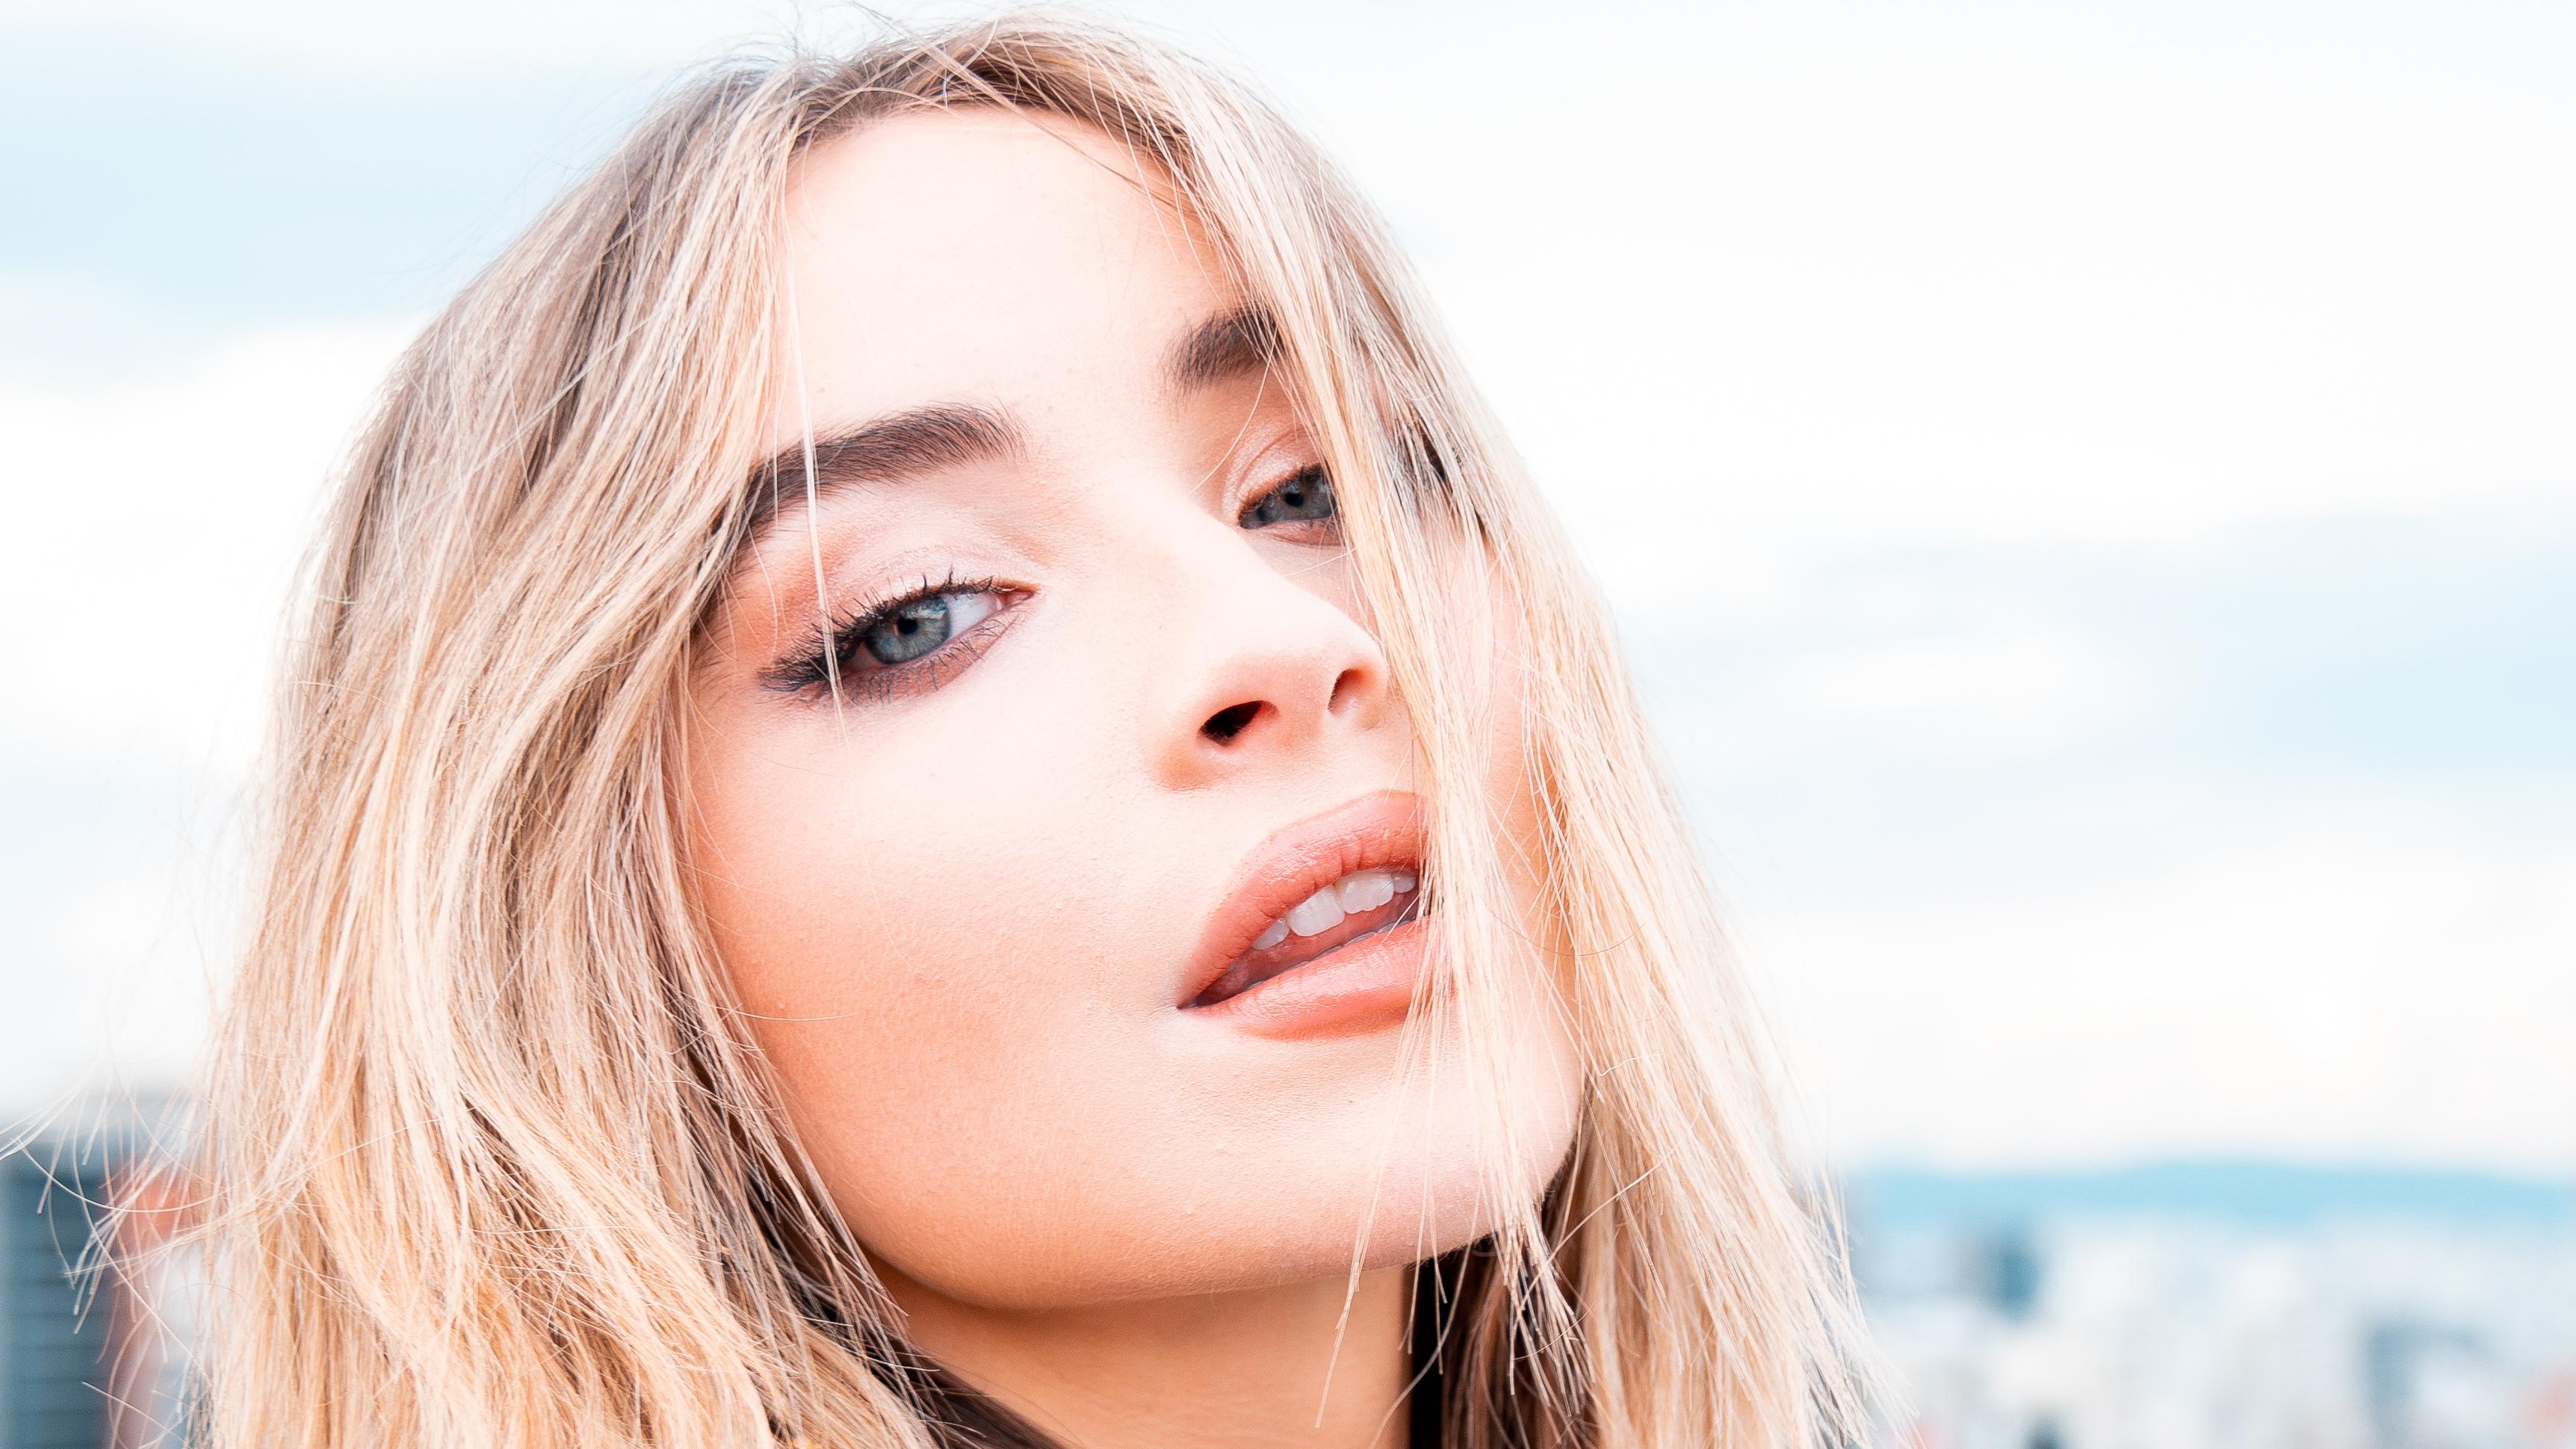 1920x1080 sabrina carpenter gorgeous 2019 laptop full hd - Sabrina carpenter hd wallpaper ...